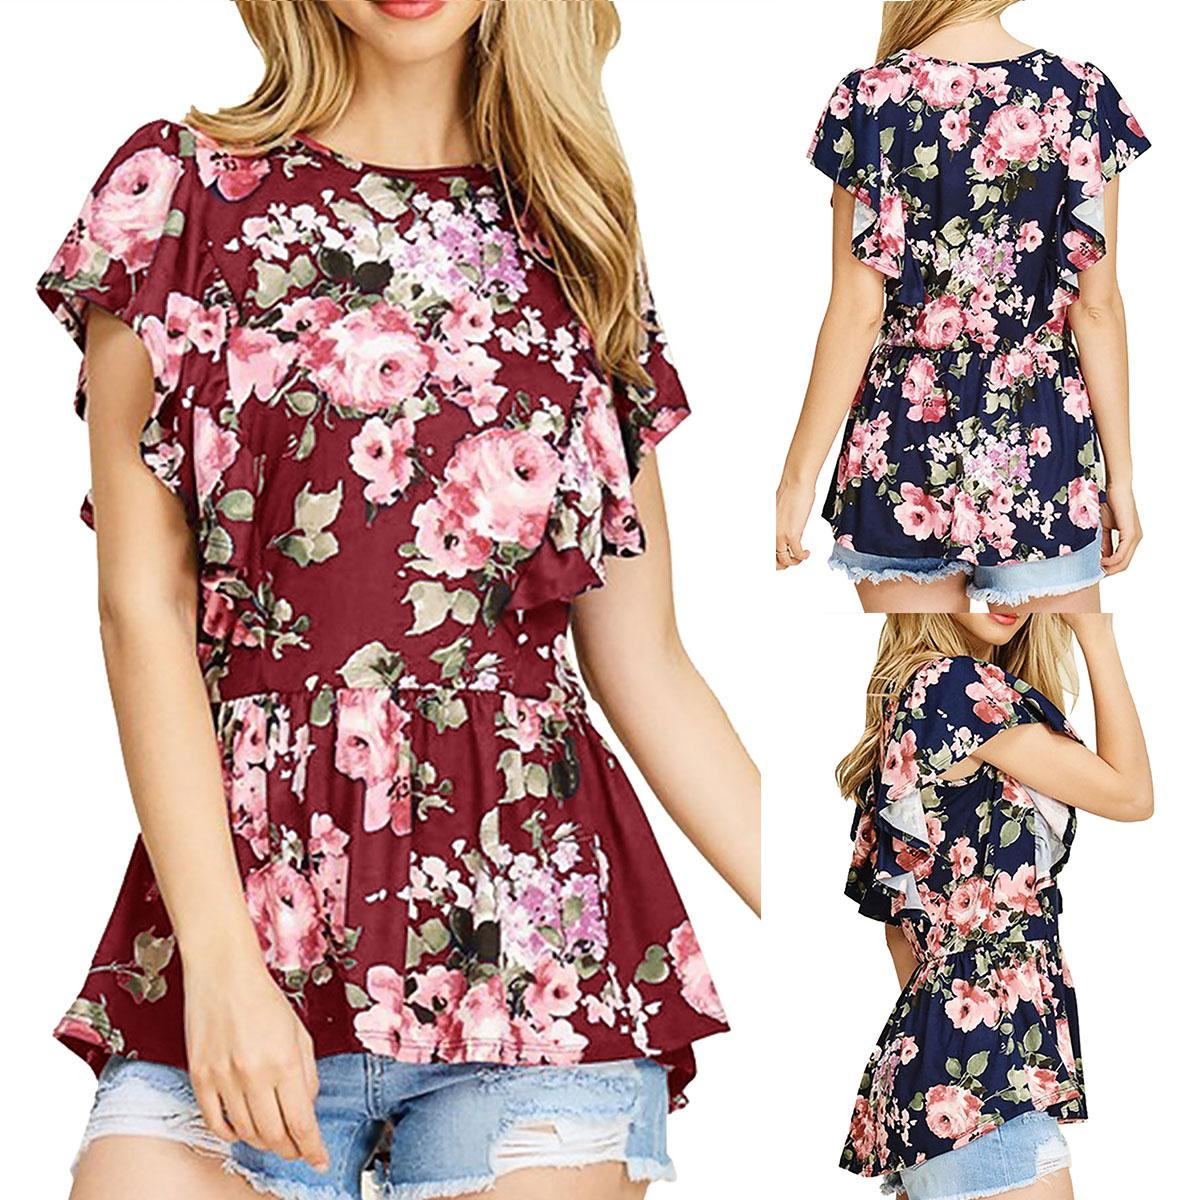 a9b3323f6d025 2018 Summer Women Casual Floral Print Lycra Tee Shirt Ruffle Short Sleeve  T-shirt Beach Holiday Blouse Loose Peplum Tops